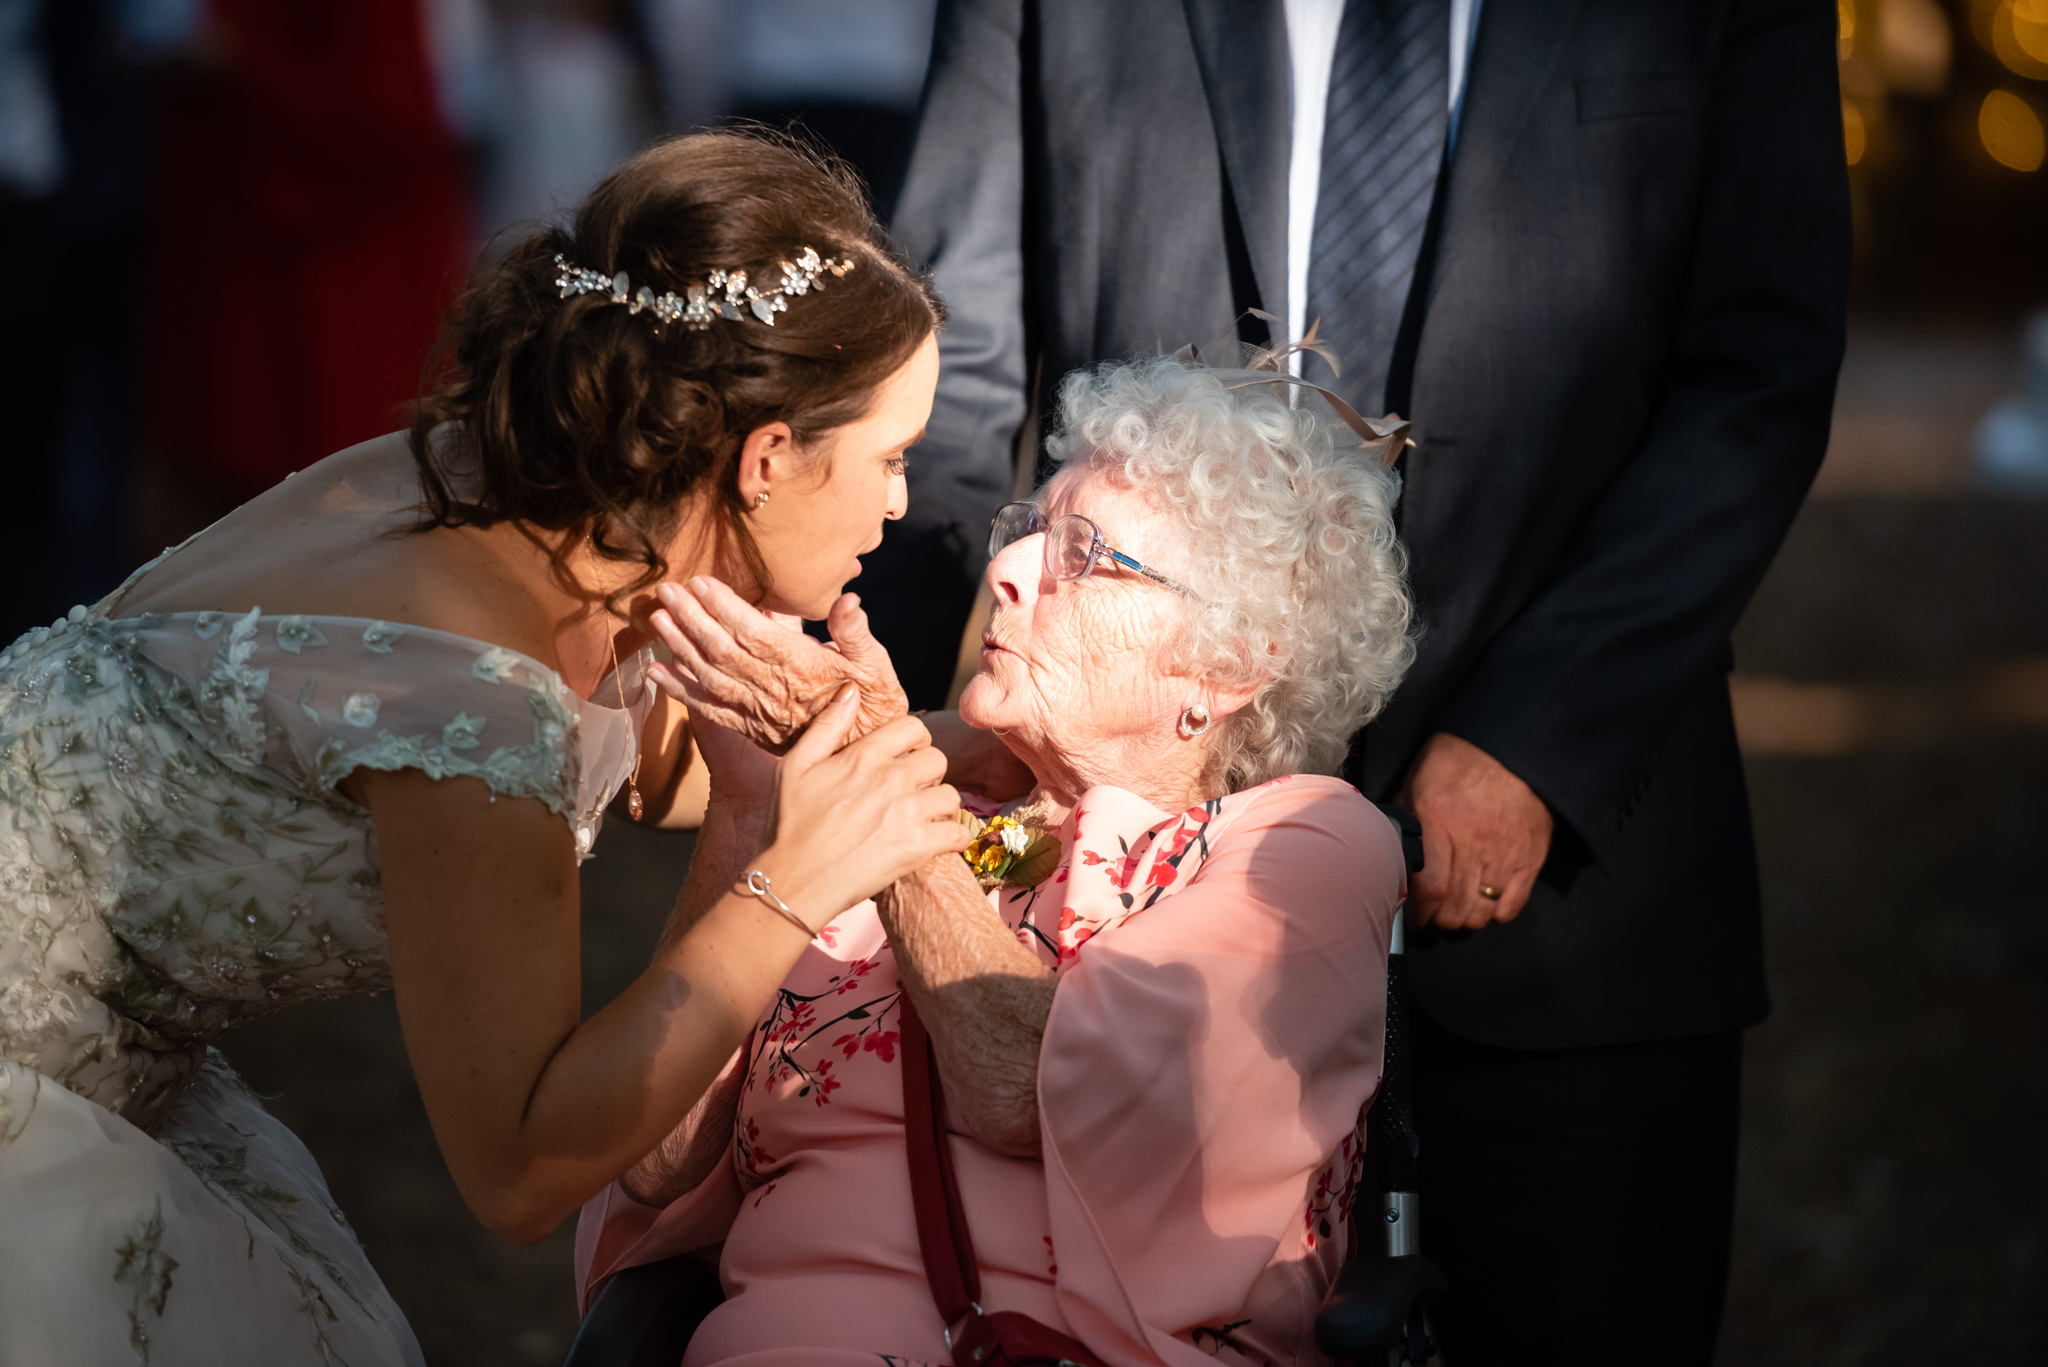 The Bride says goodbye to her Gran